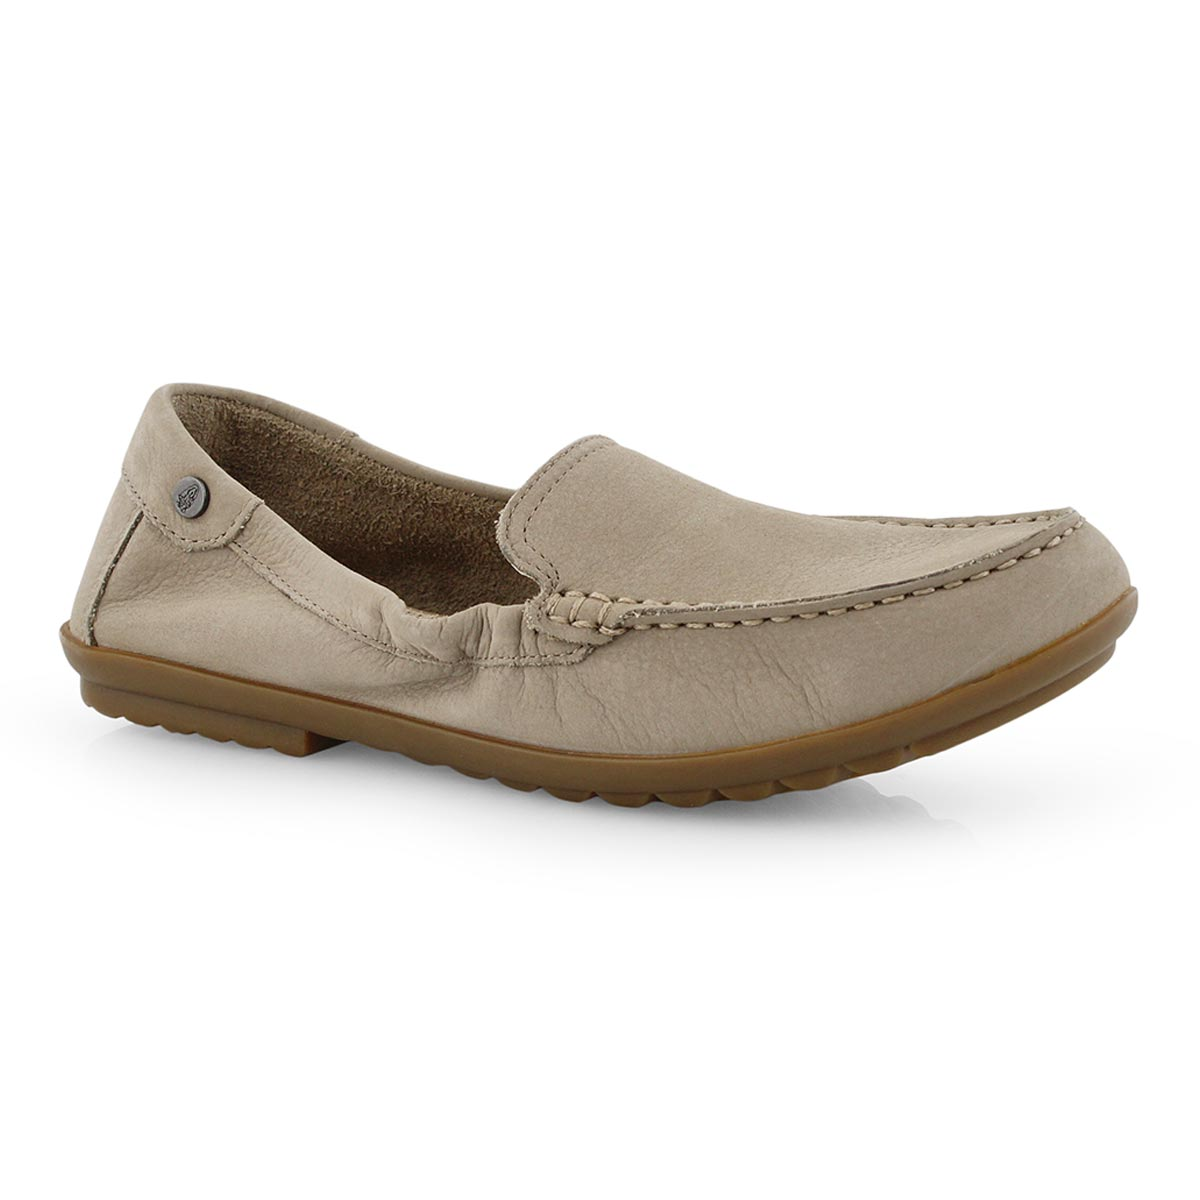 Lds Aidi Mocc taupe casual slip on